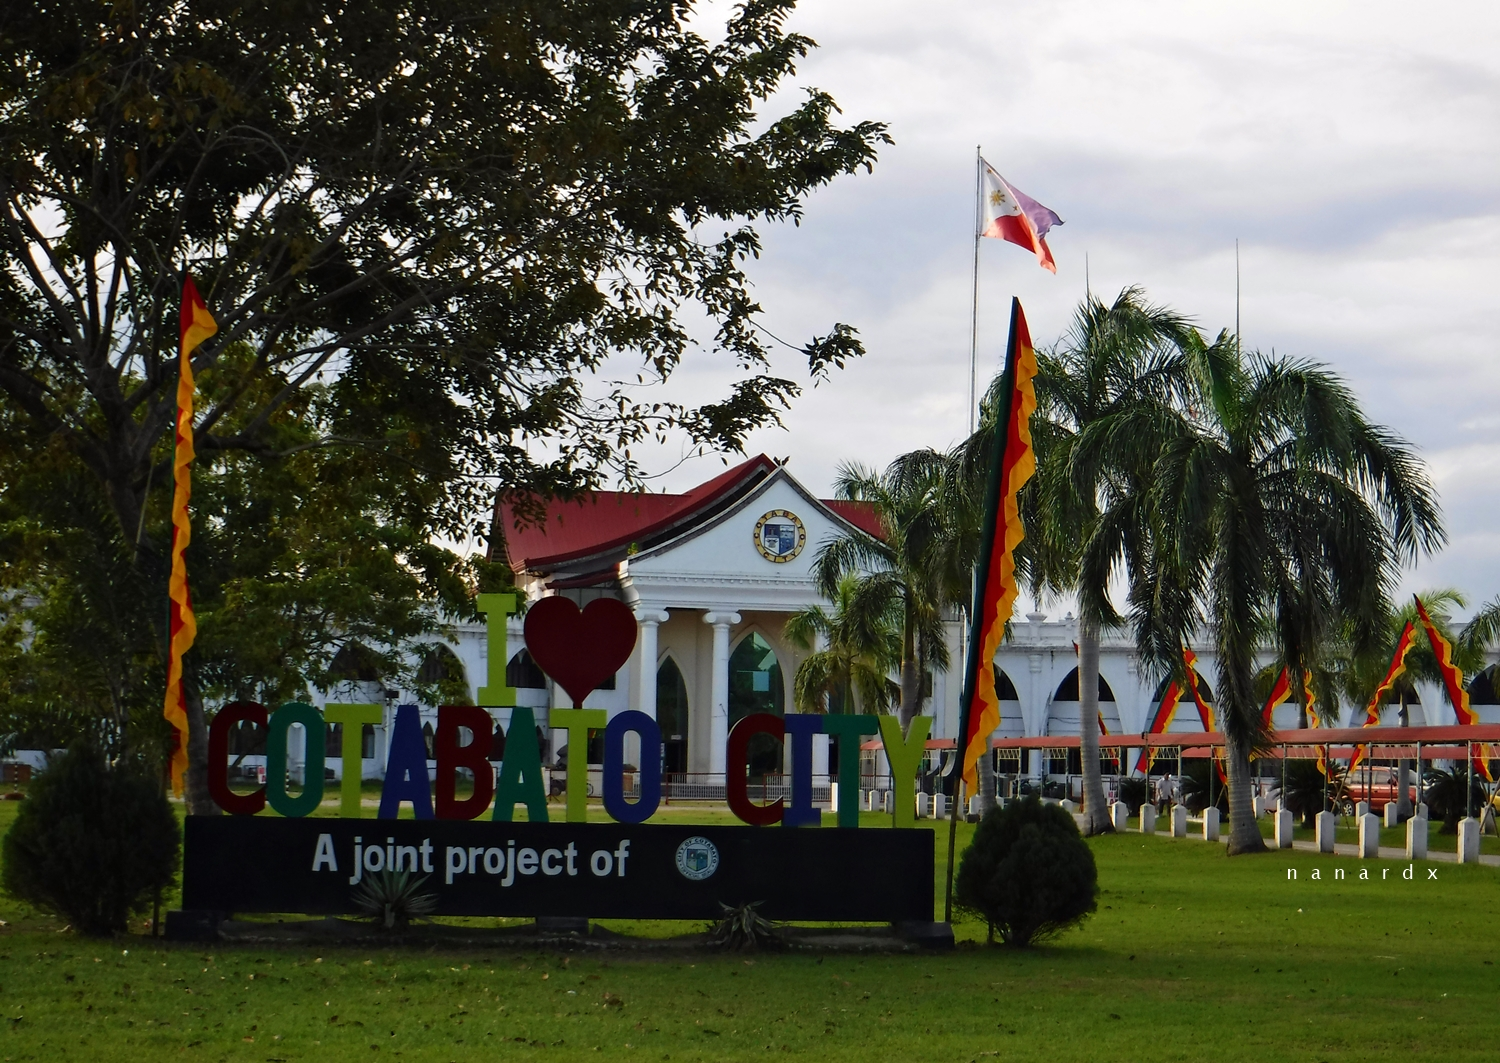 Cotabato is safest city in Mindanao, 2nd safest city in the Philippines